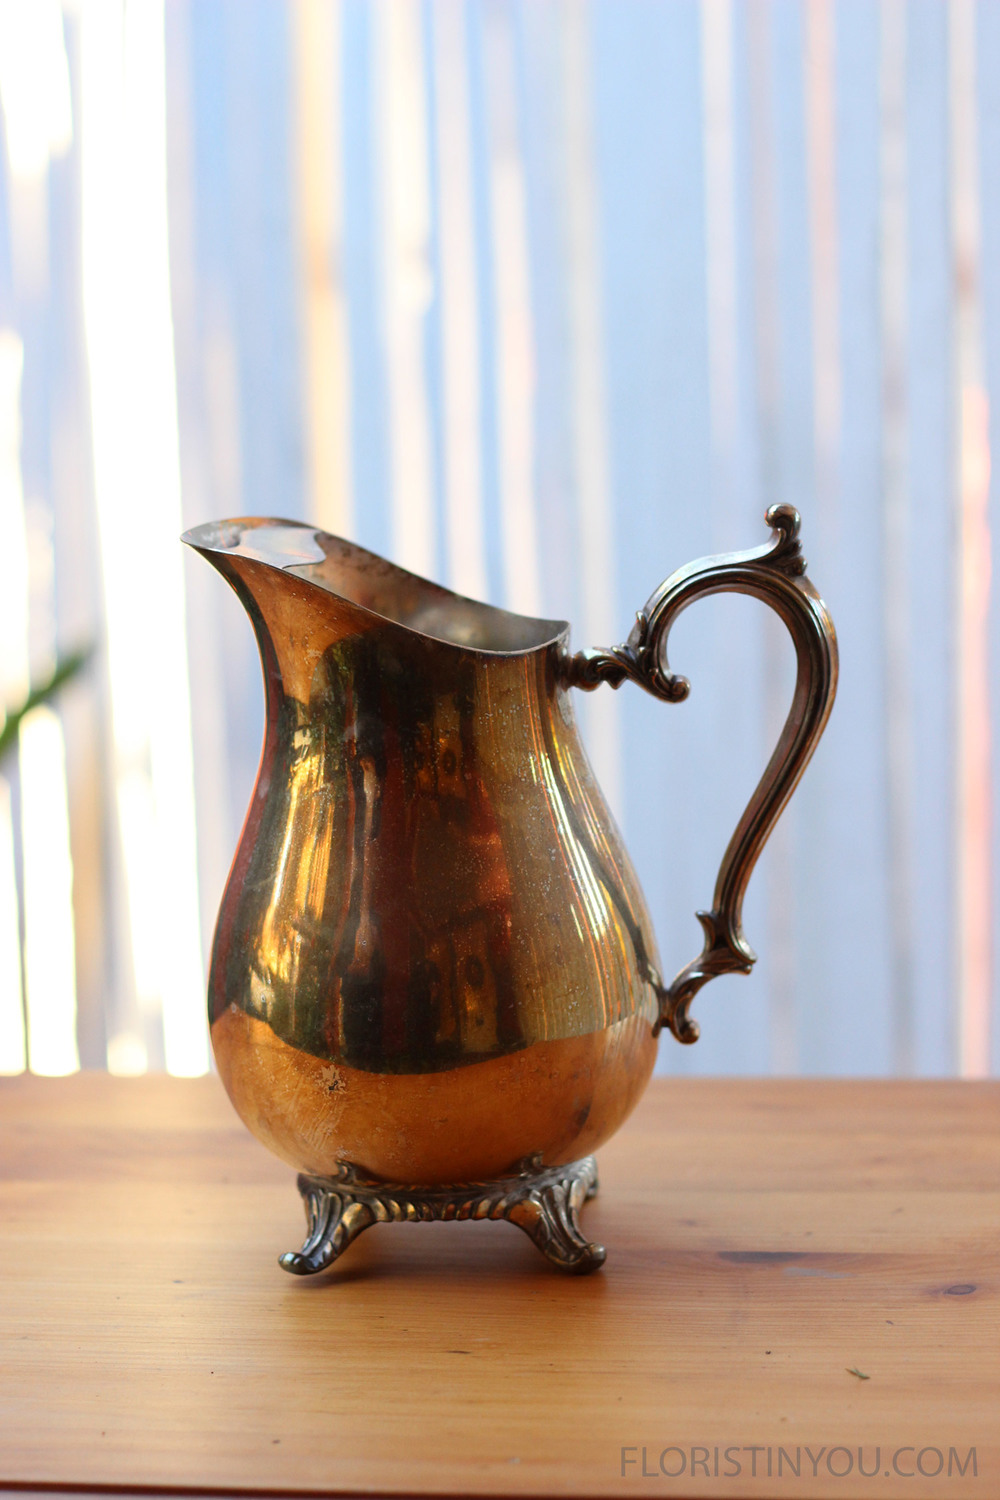 Then get out Grandma's silver pitcher.  You may polish it or leave its natural patina.